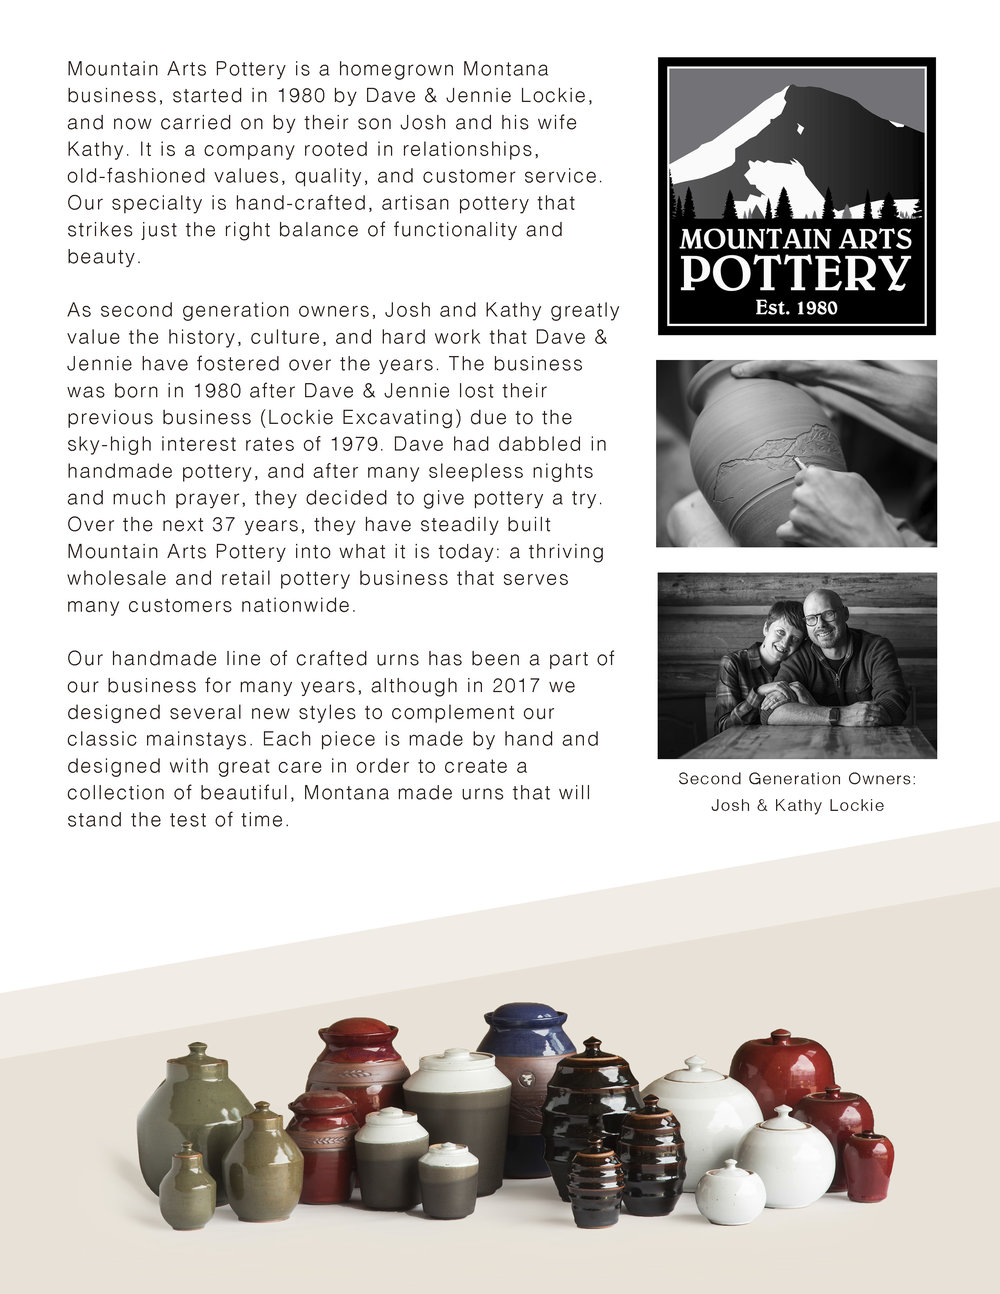 Mountain Arts Pottery Urn Article (1).jpg